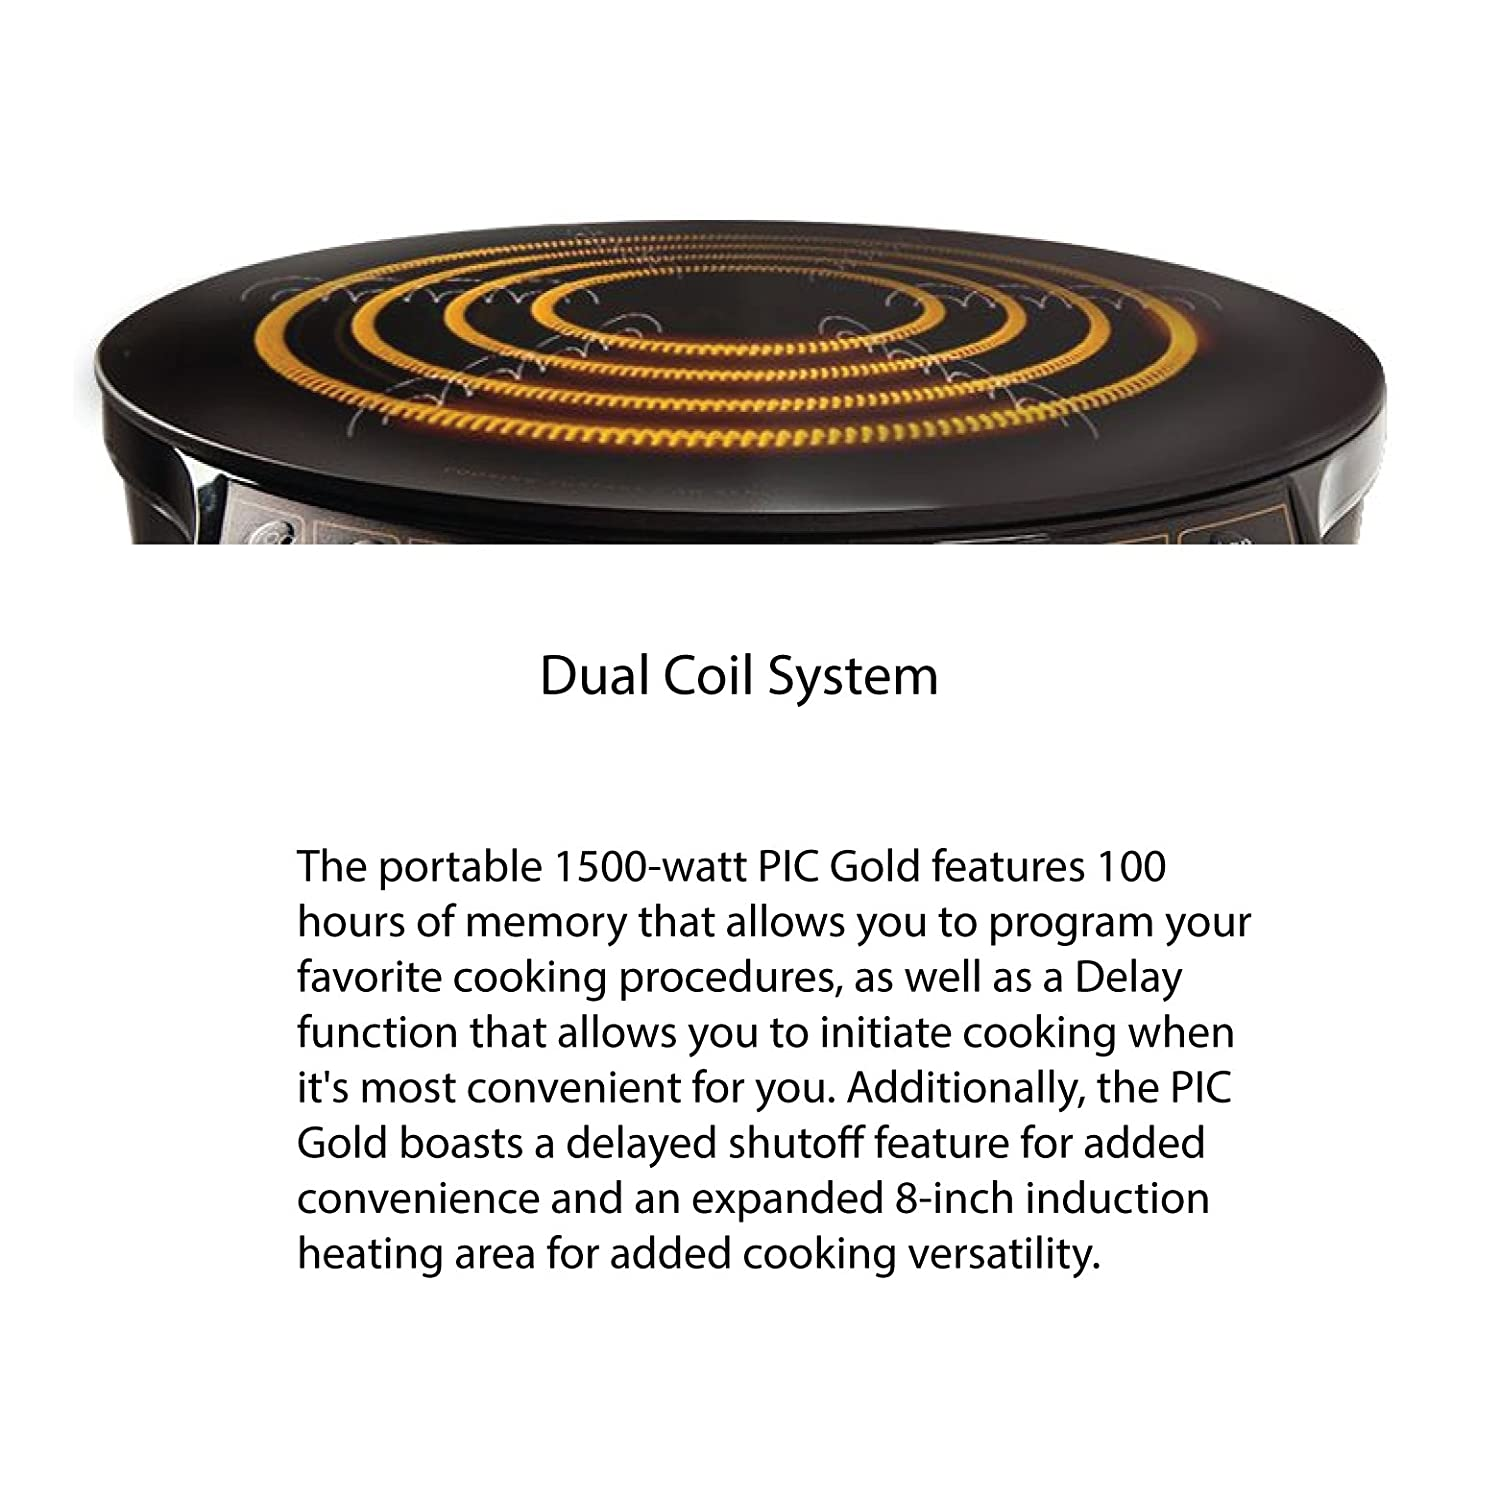 Nuwave Pic Gold 1500w Portable Induction Cooktop Low Price Cookerb3 View Circuit Board Cooker Countertop Burner Kitchen Dining